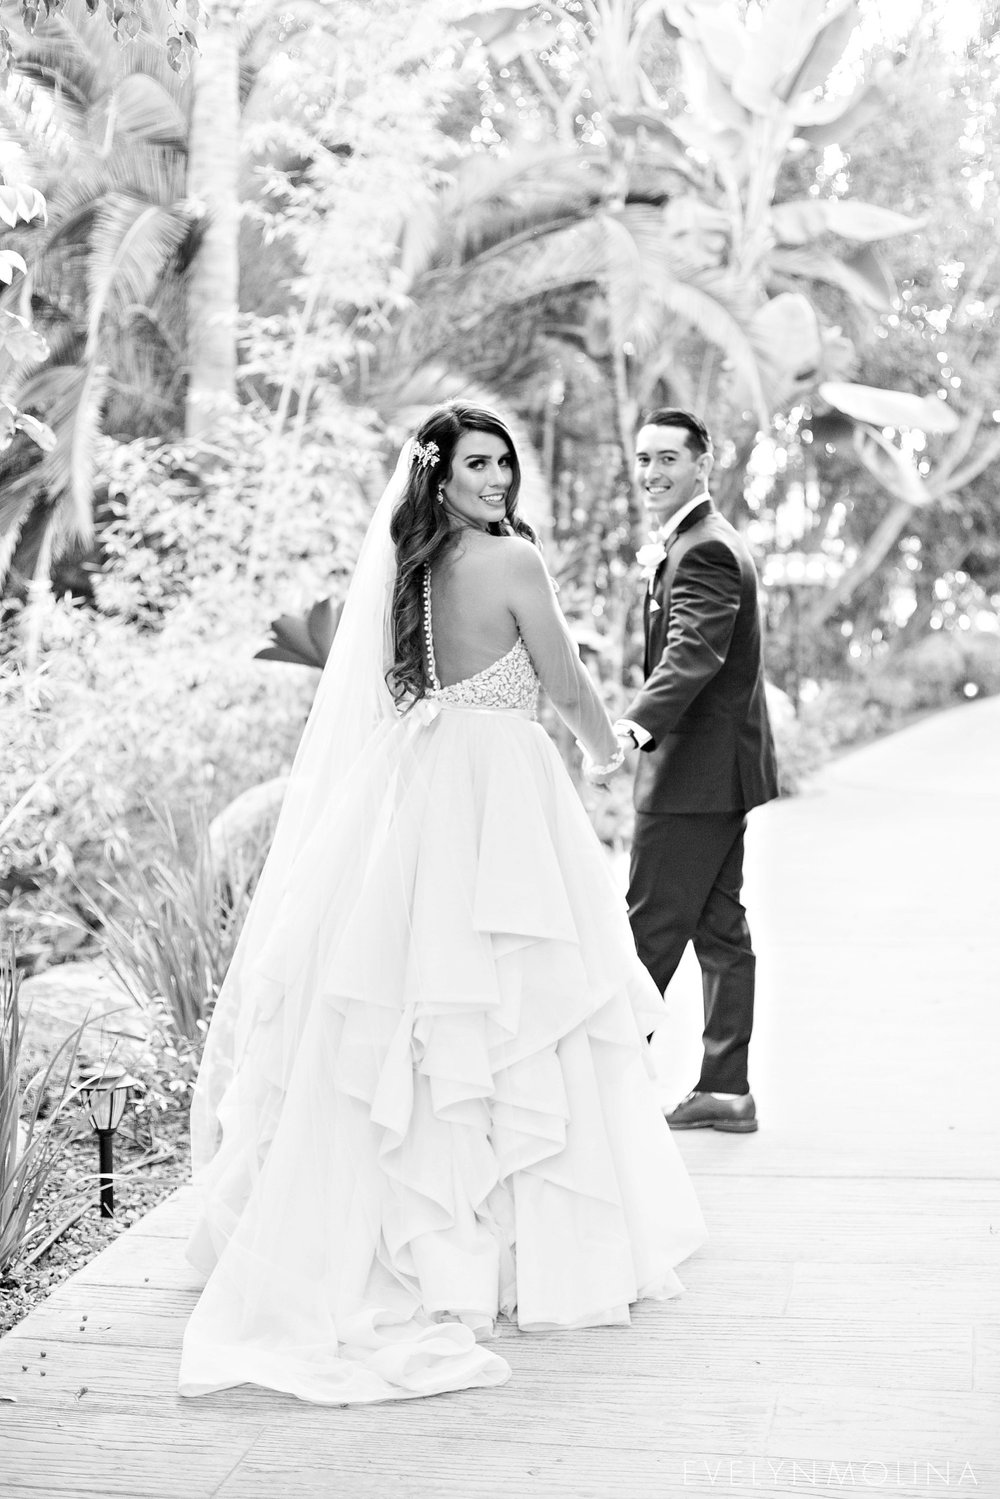 Paradise Falls Summer Wedding - Samantha and Cliff_060.jpg